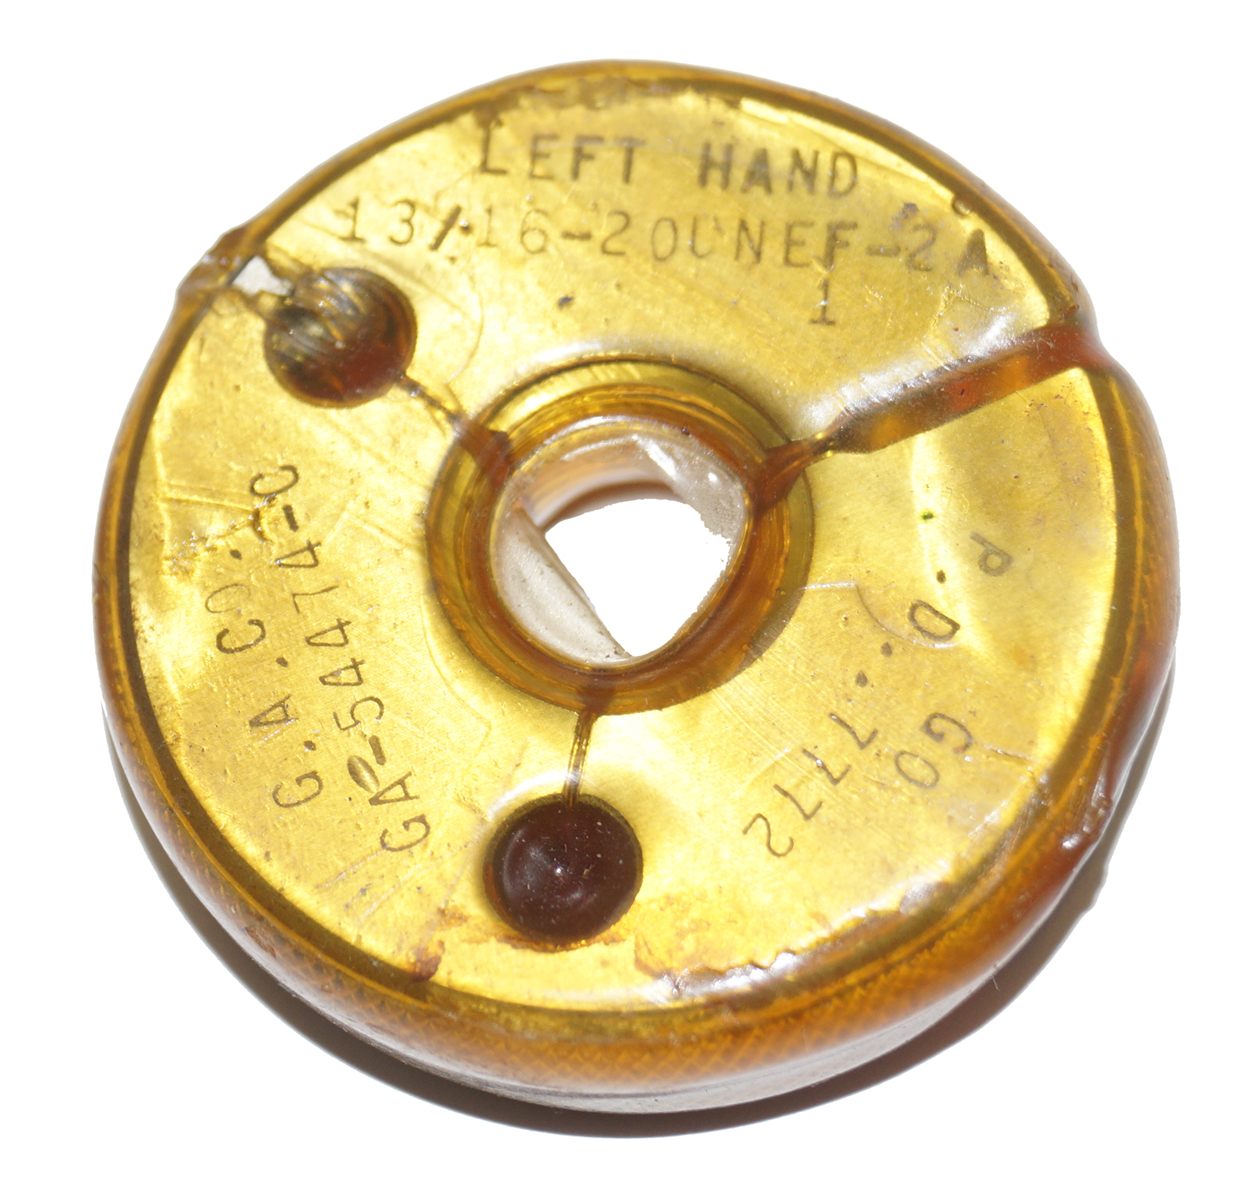 13/16-20UNEF-2A Left Hand LH Thread Ring Gage Go PD: .7772